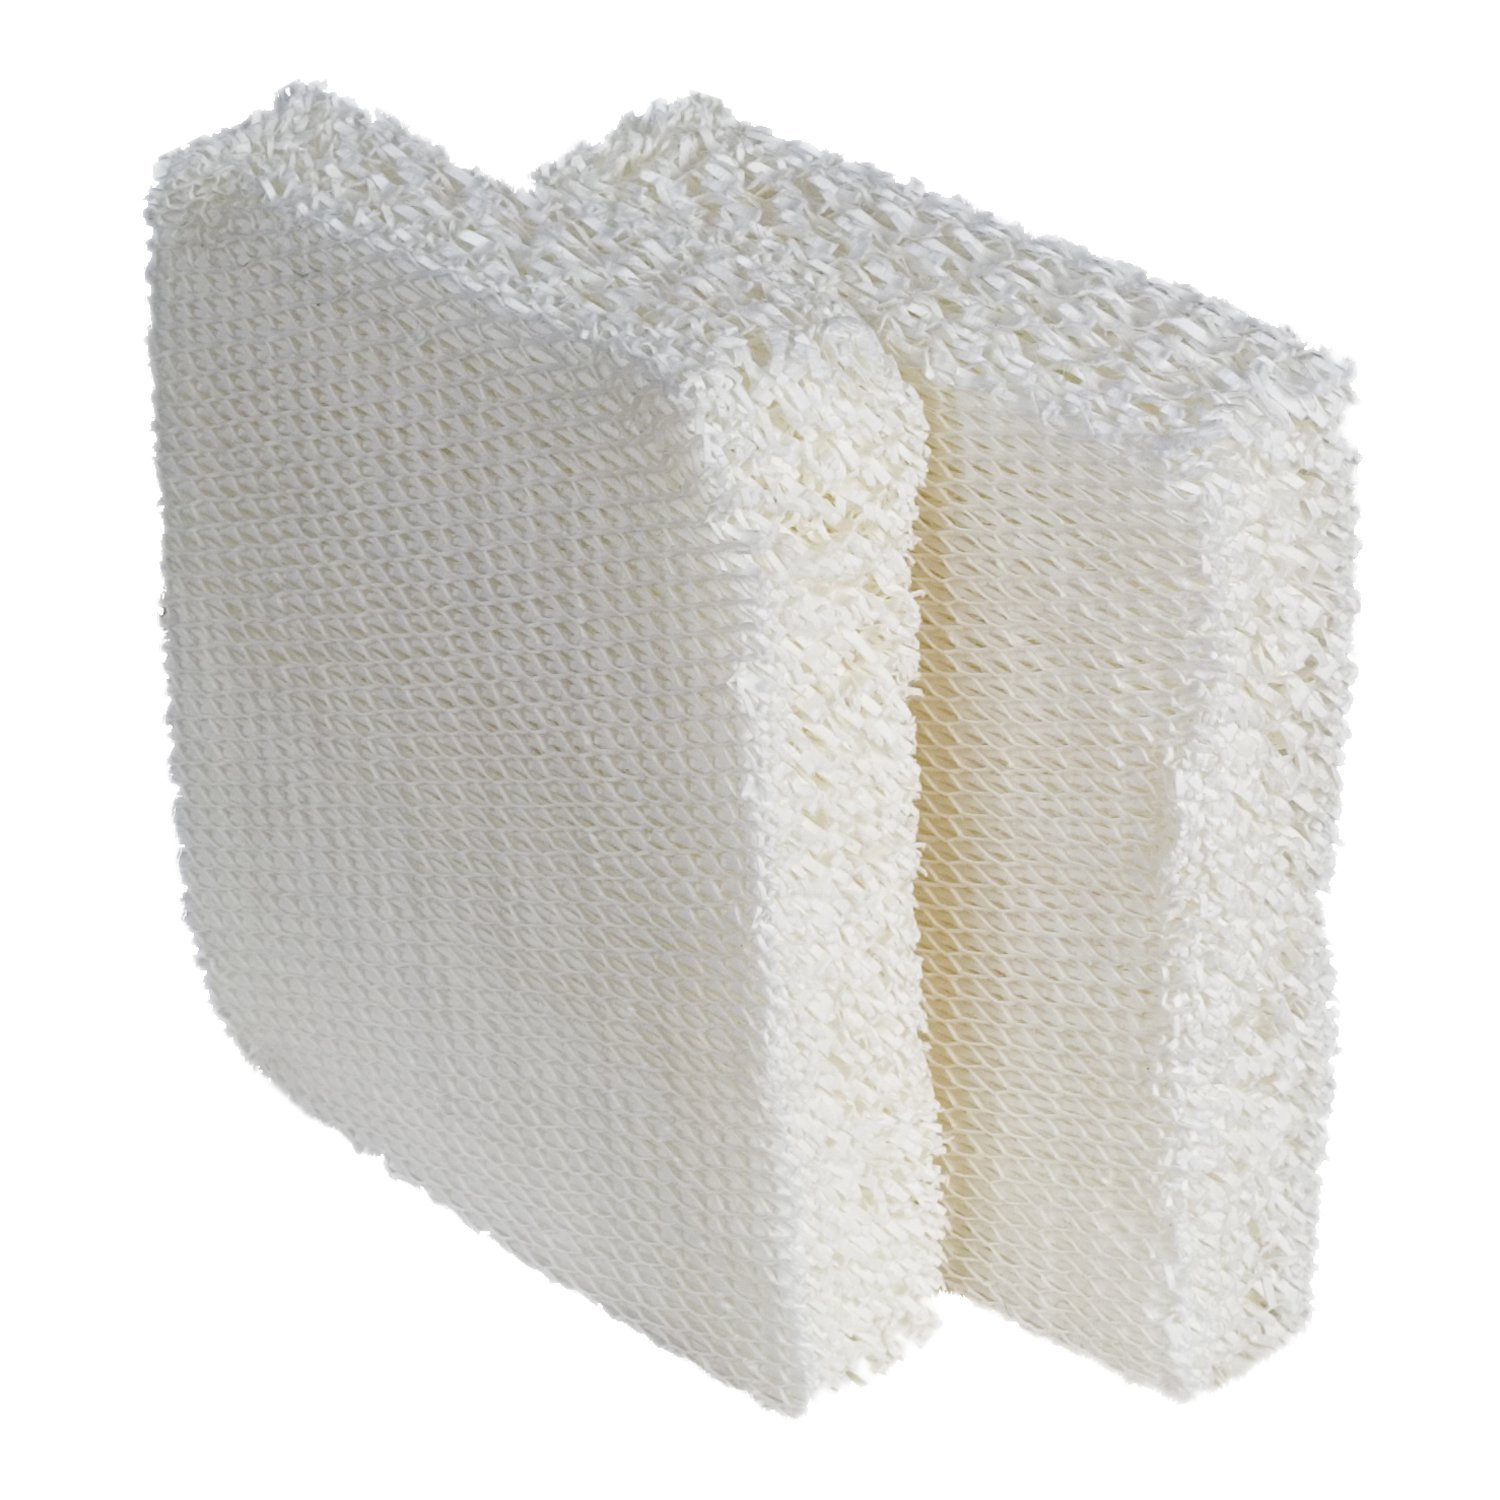 MD1-1002 Vornado Humidifier Replacement Wick Filter VORNADO-MD1-1002